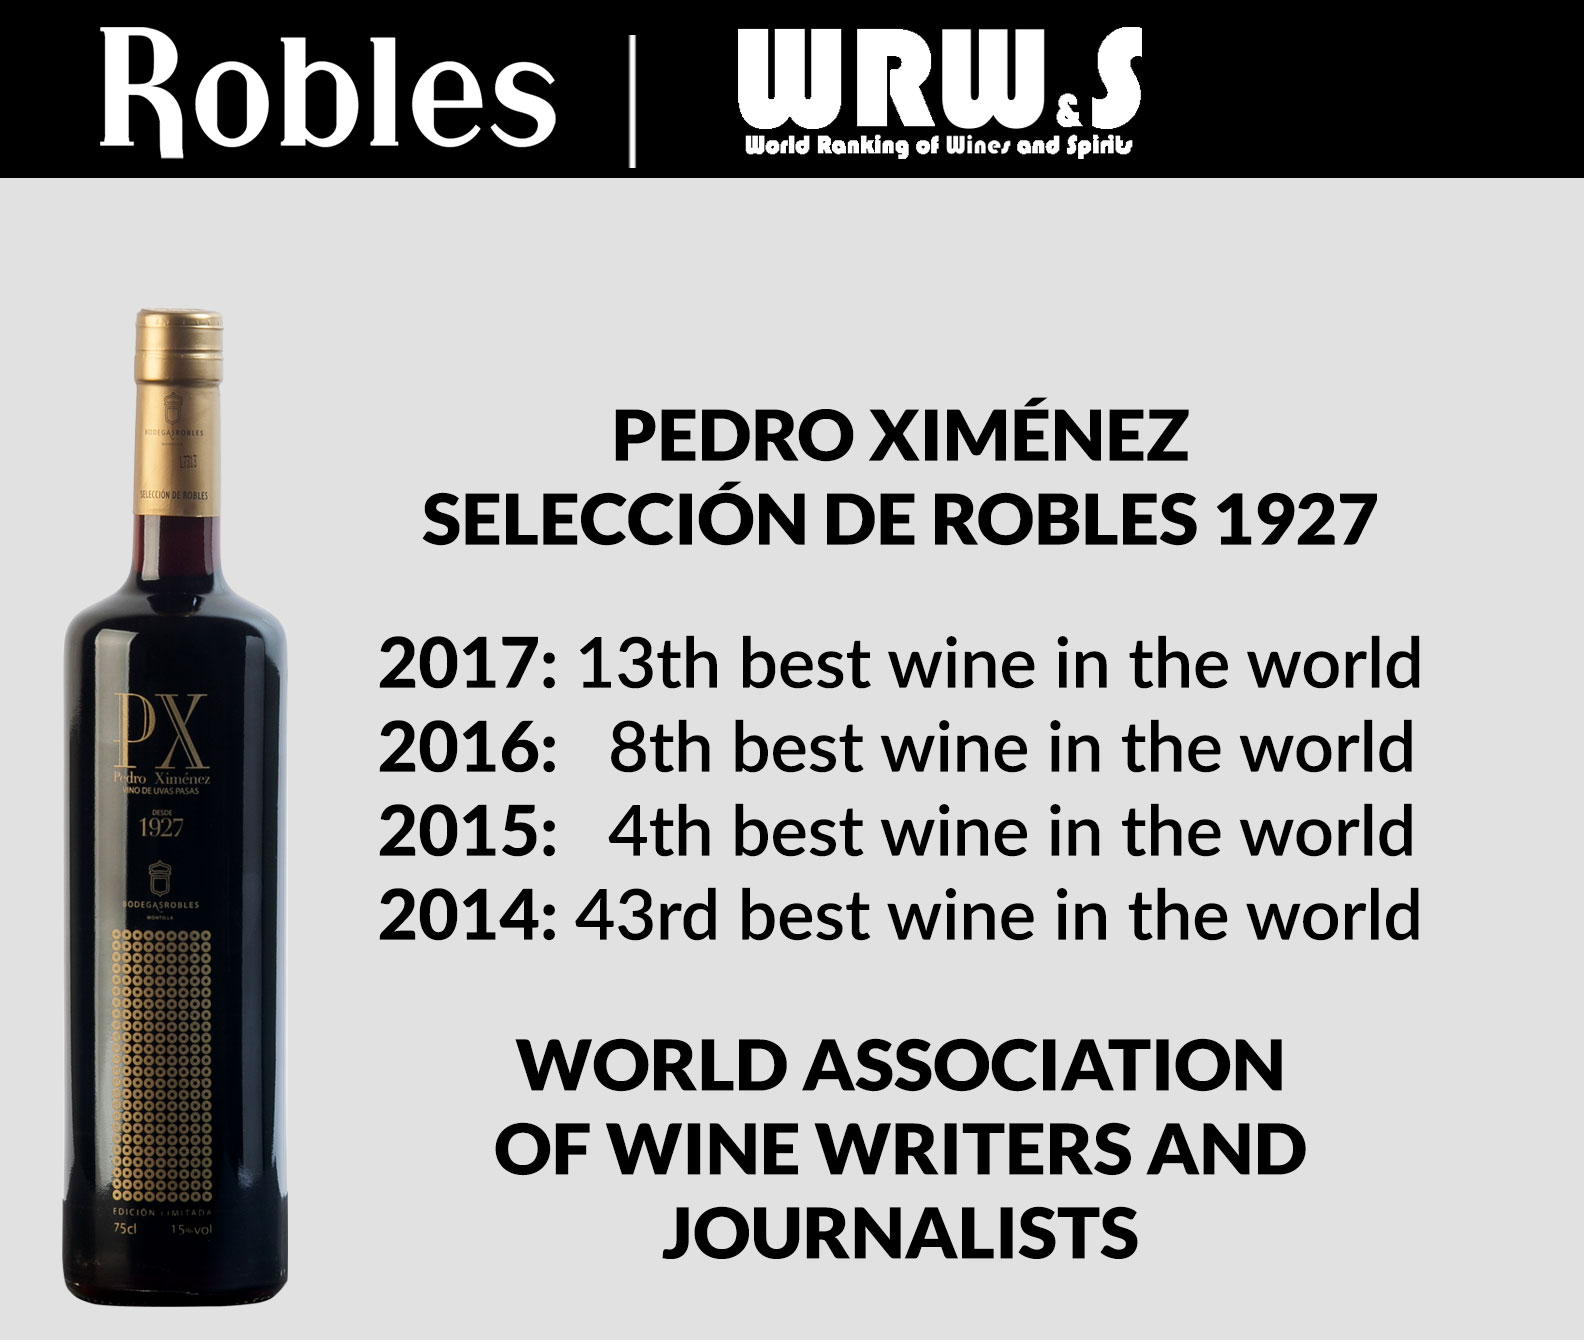 Four years among the 50 best wines in the world